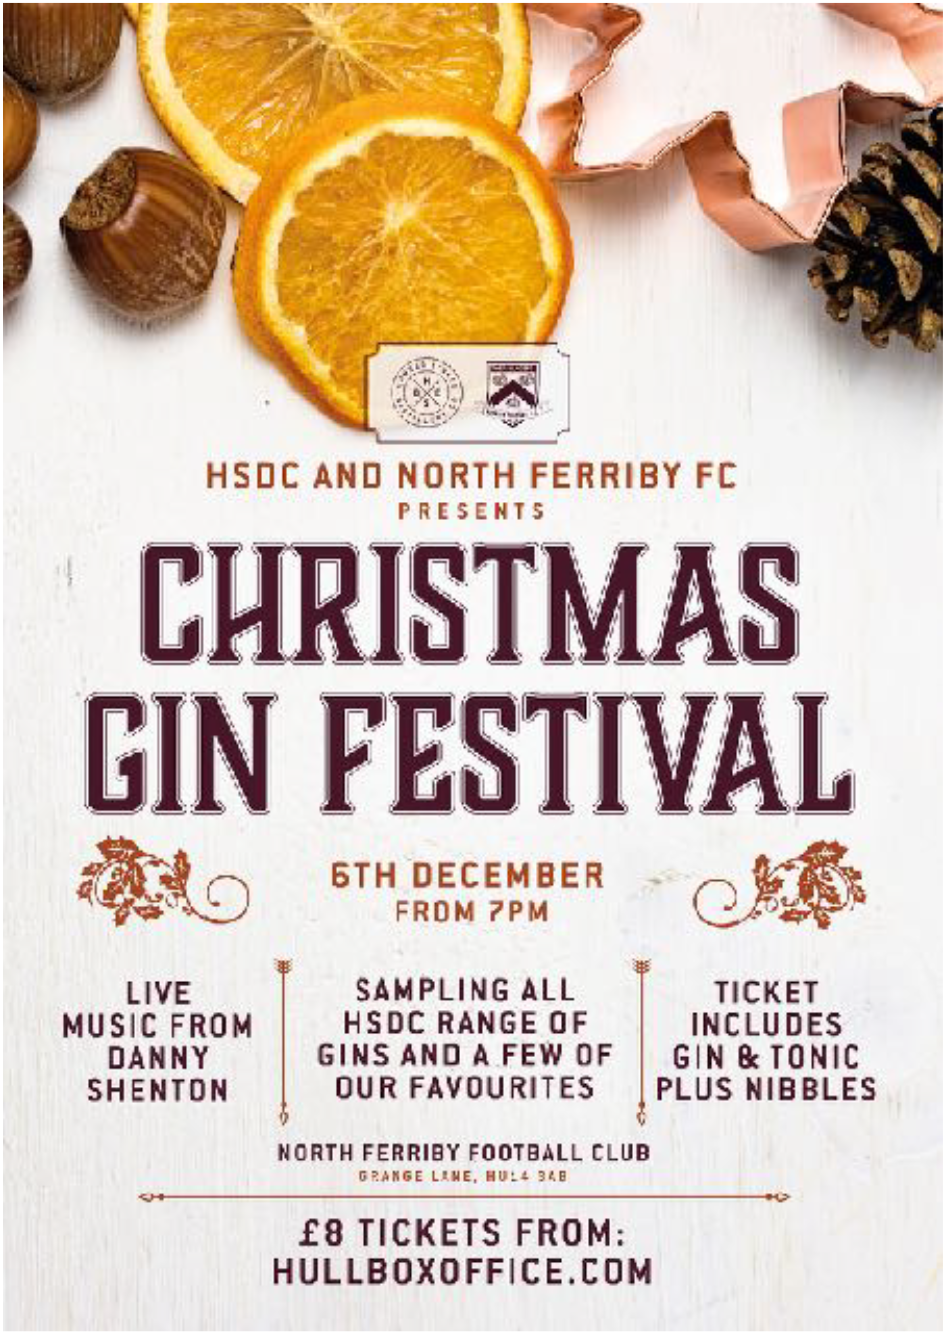 Don't miss our firstChristmas Gin Festival,this Friday 6th December at the Clubhouse from 7pm